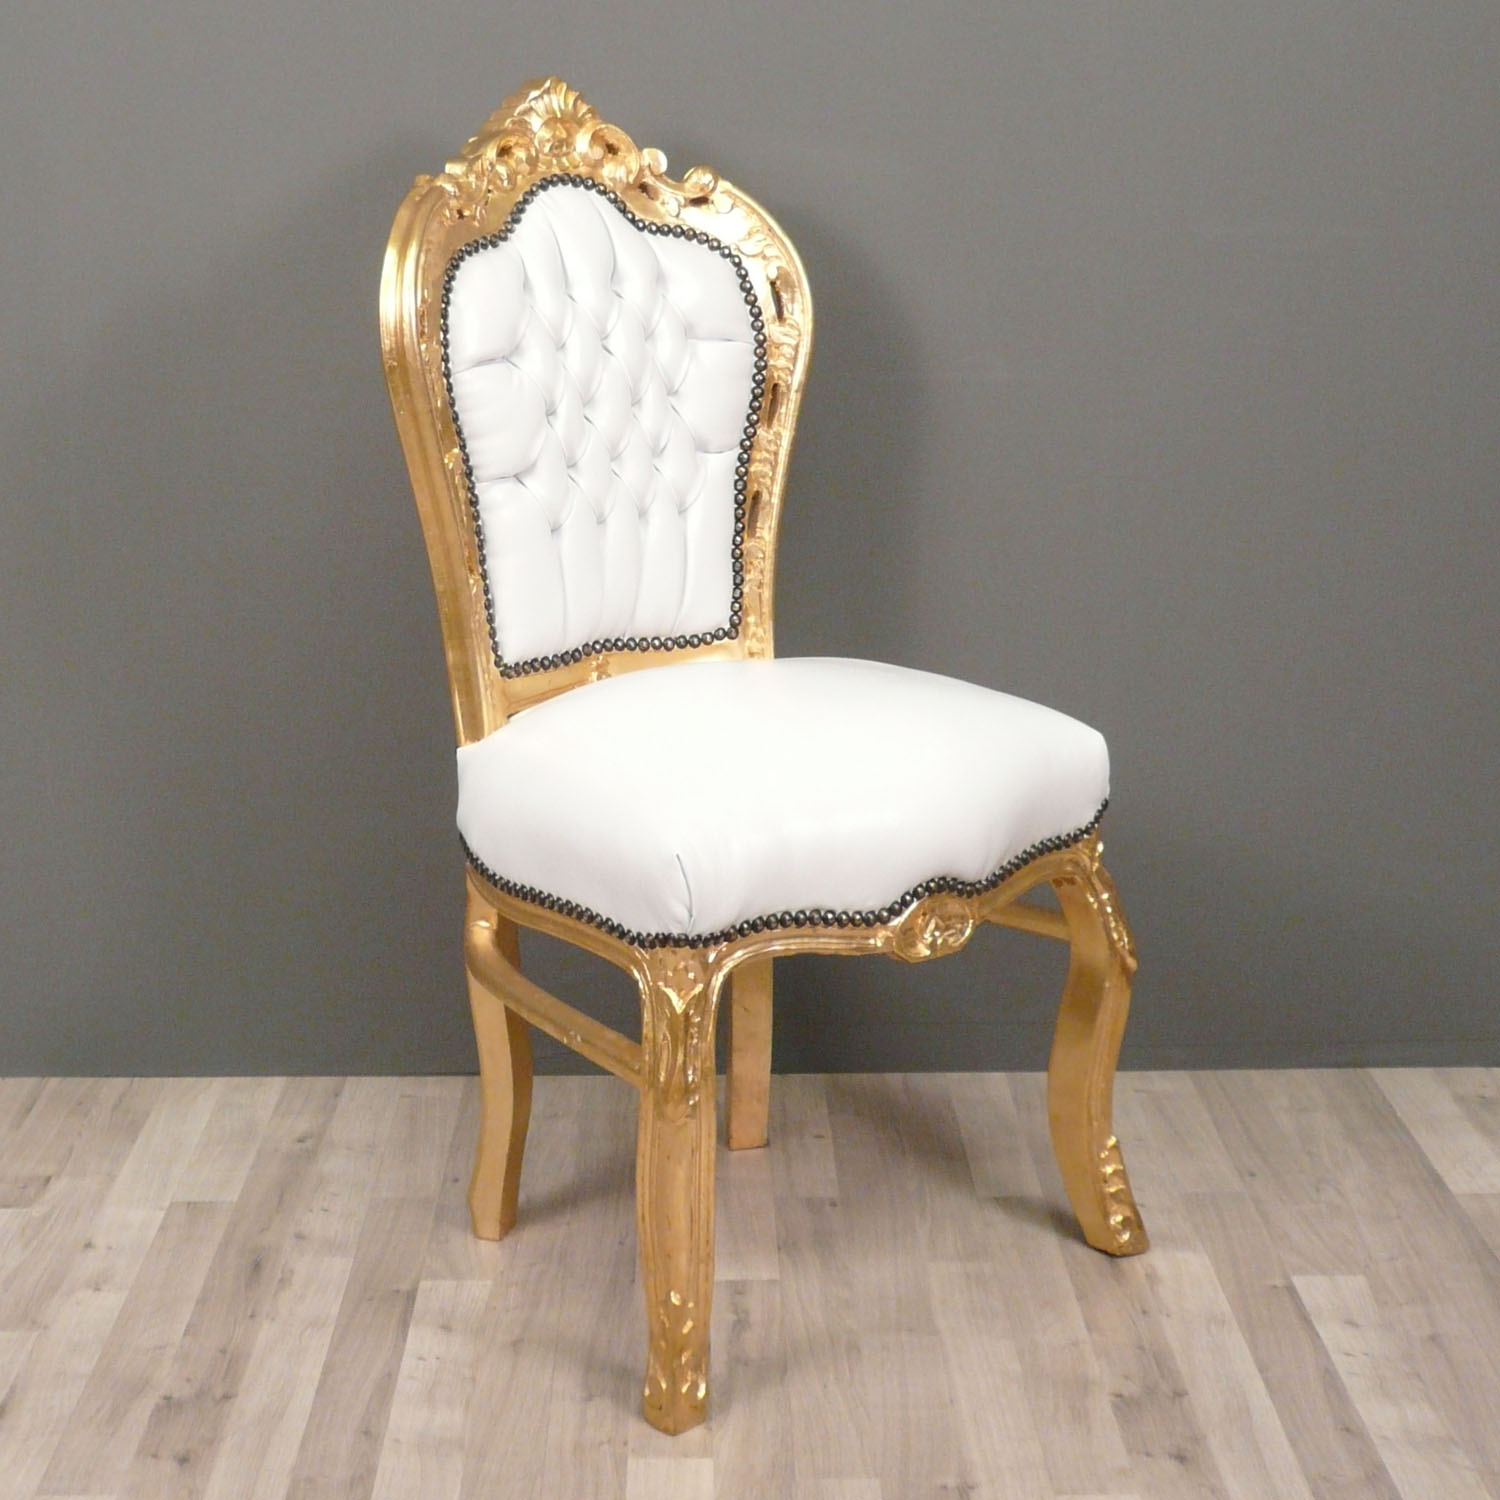 white and gold chair leather lift chairs covered by medicare baroque bronze statues